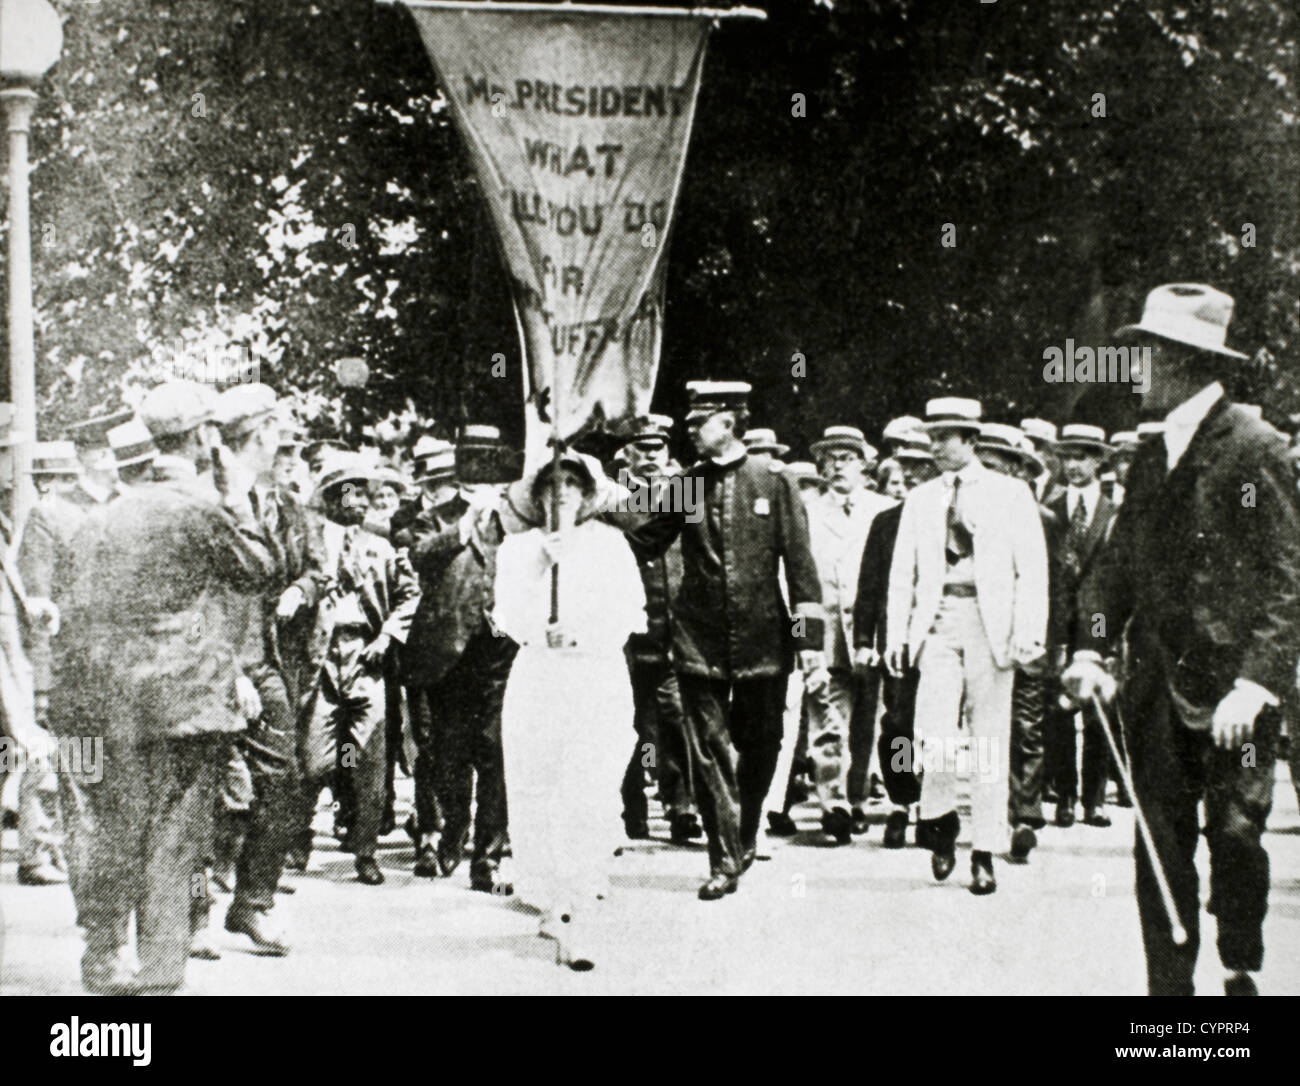 Mabel Vernon, Suffragist, Marching to White House, Washington DC, USA, 1917 - Stock Image